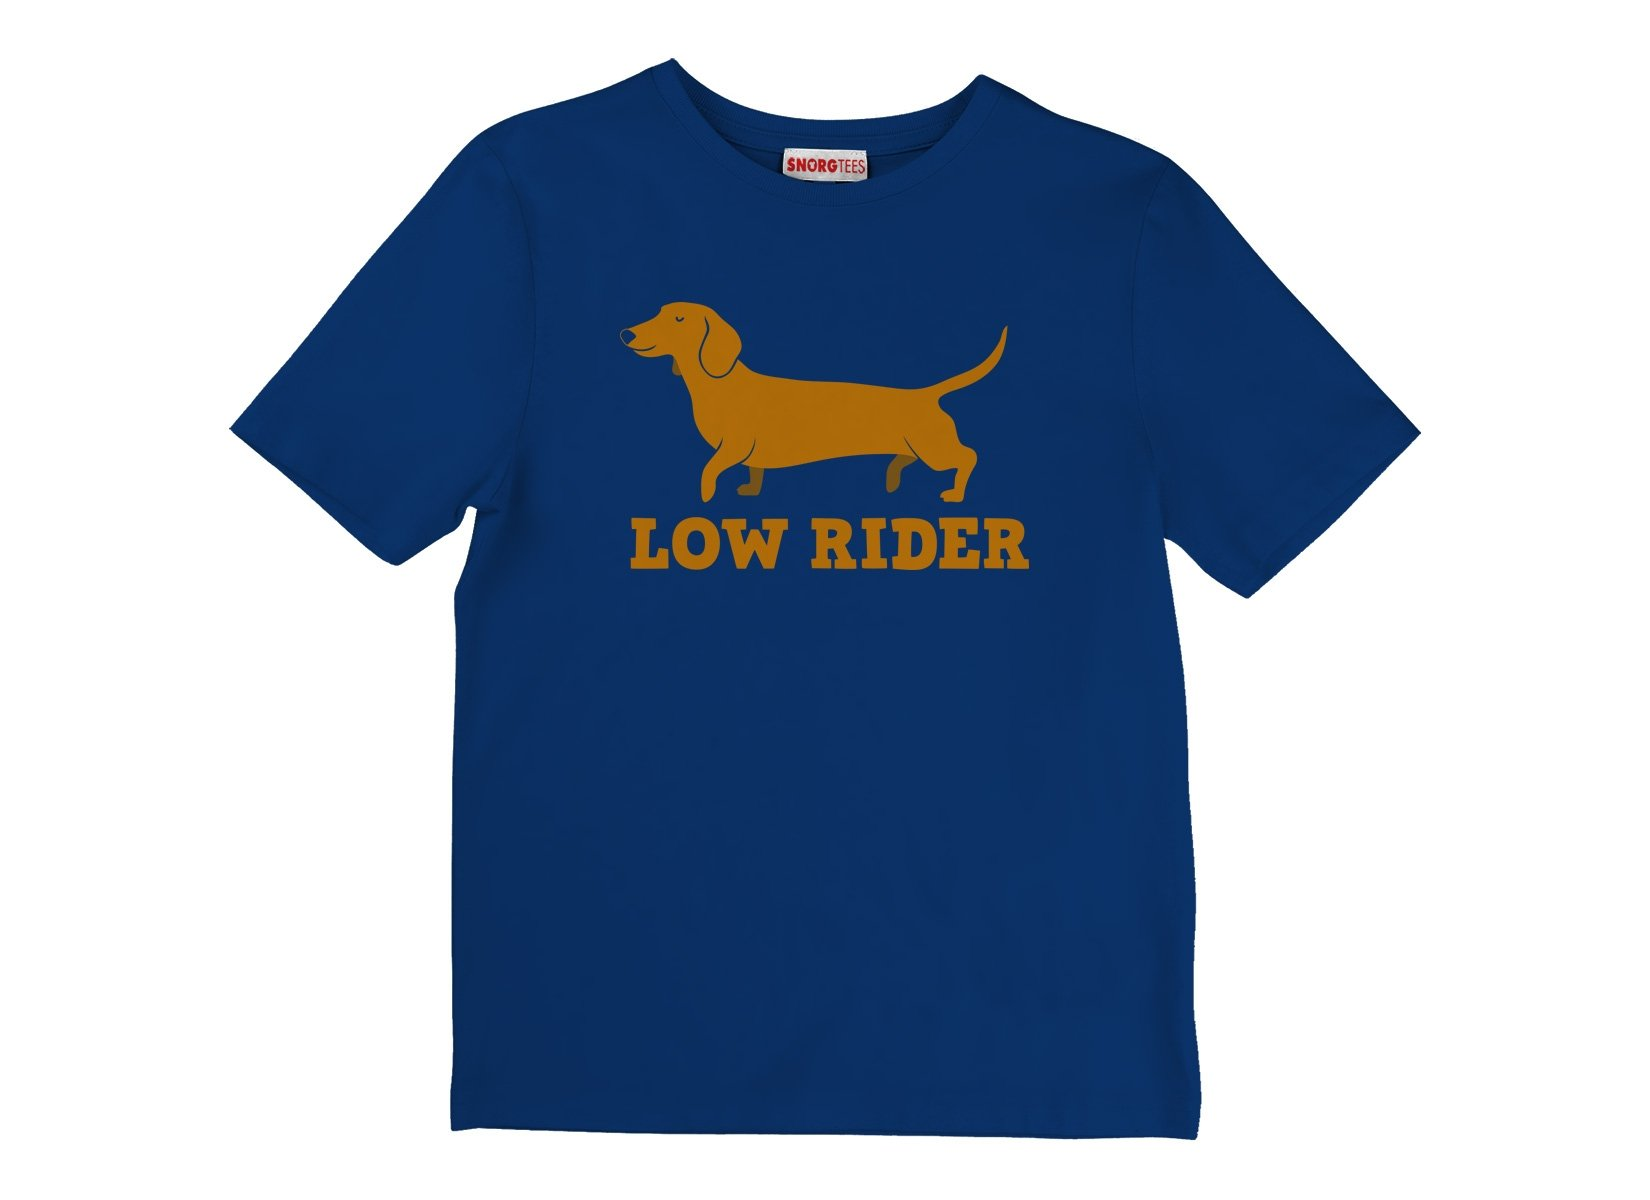 Low Rider on Kids T-Shirt